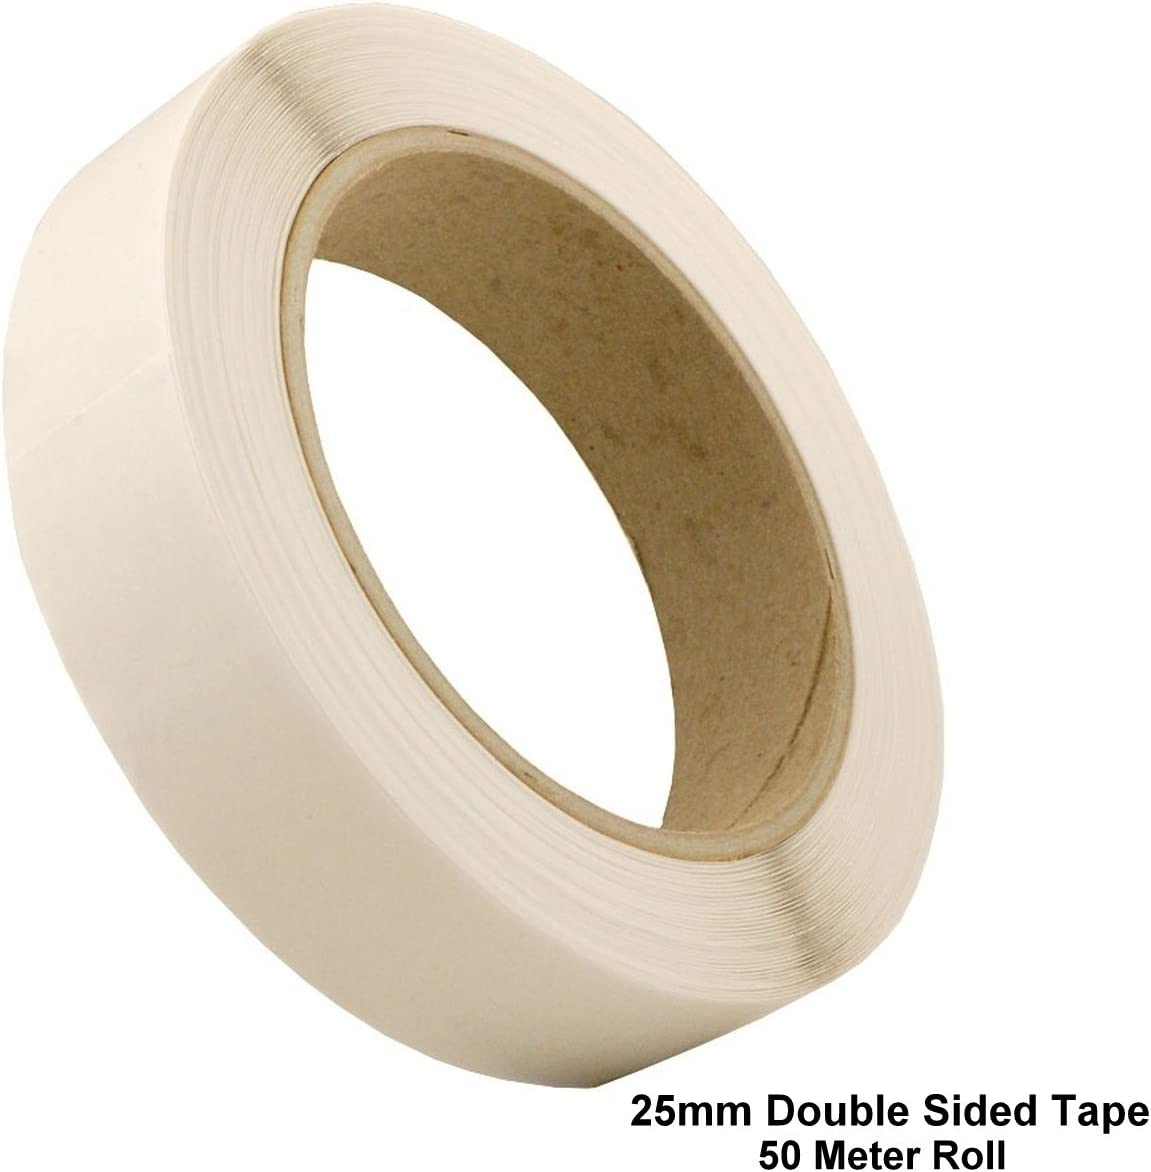 DOUBLE SIDED STICKY TAPE PACK OF 1,2,4 Crafts Adhesive Sellotape White Strong